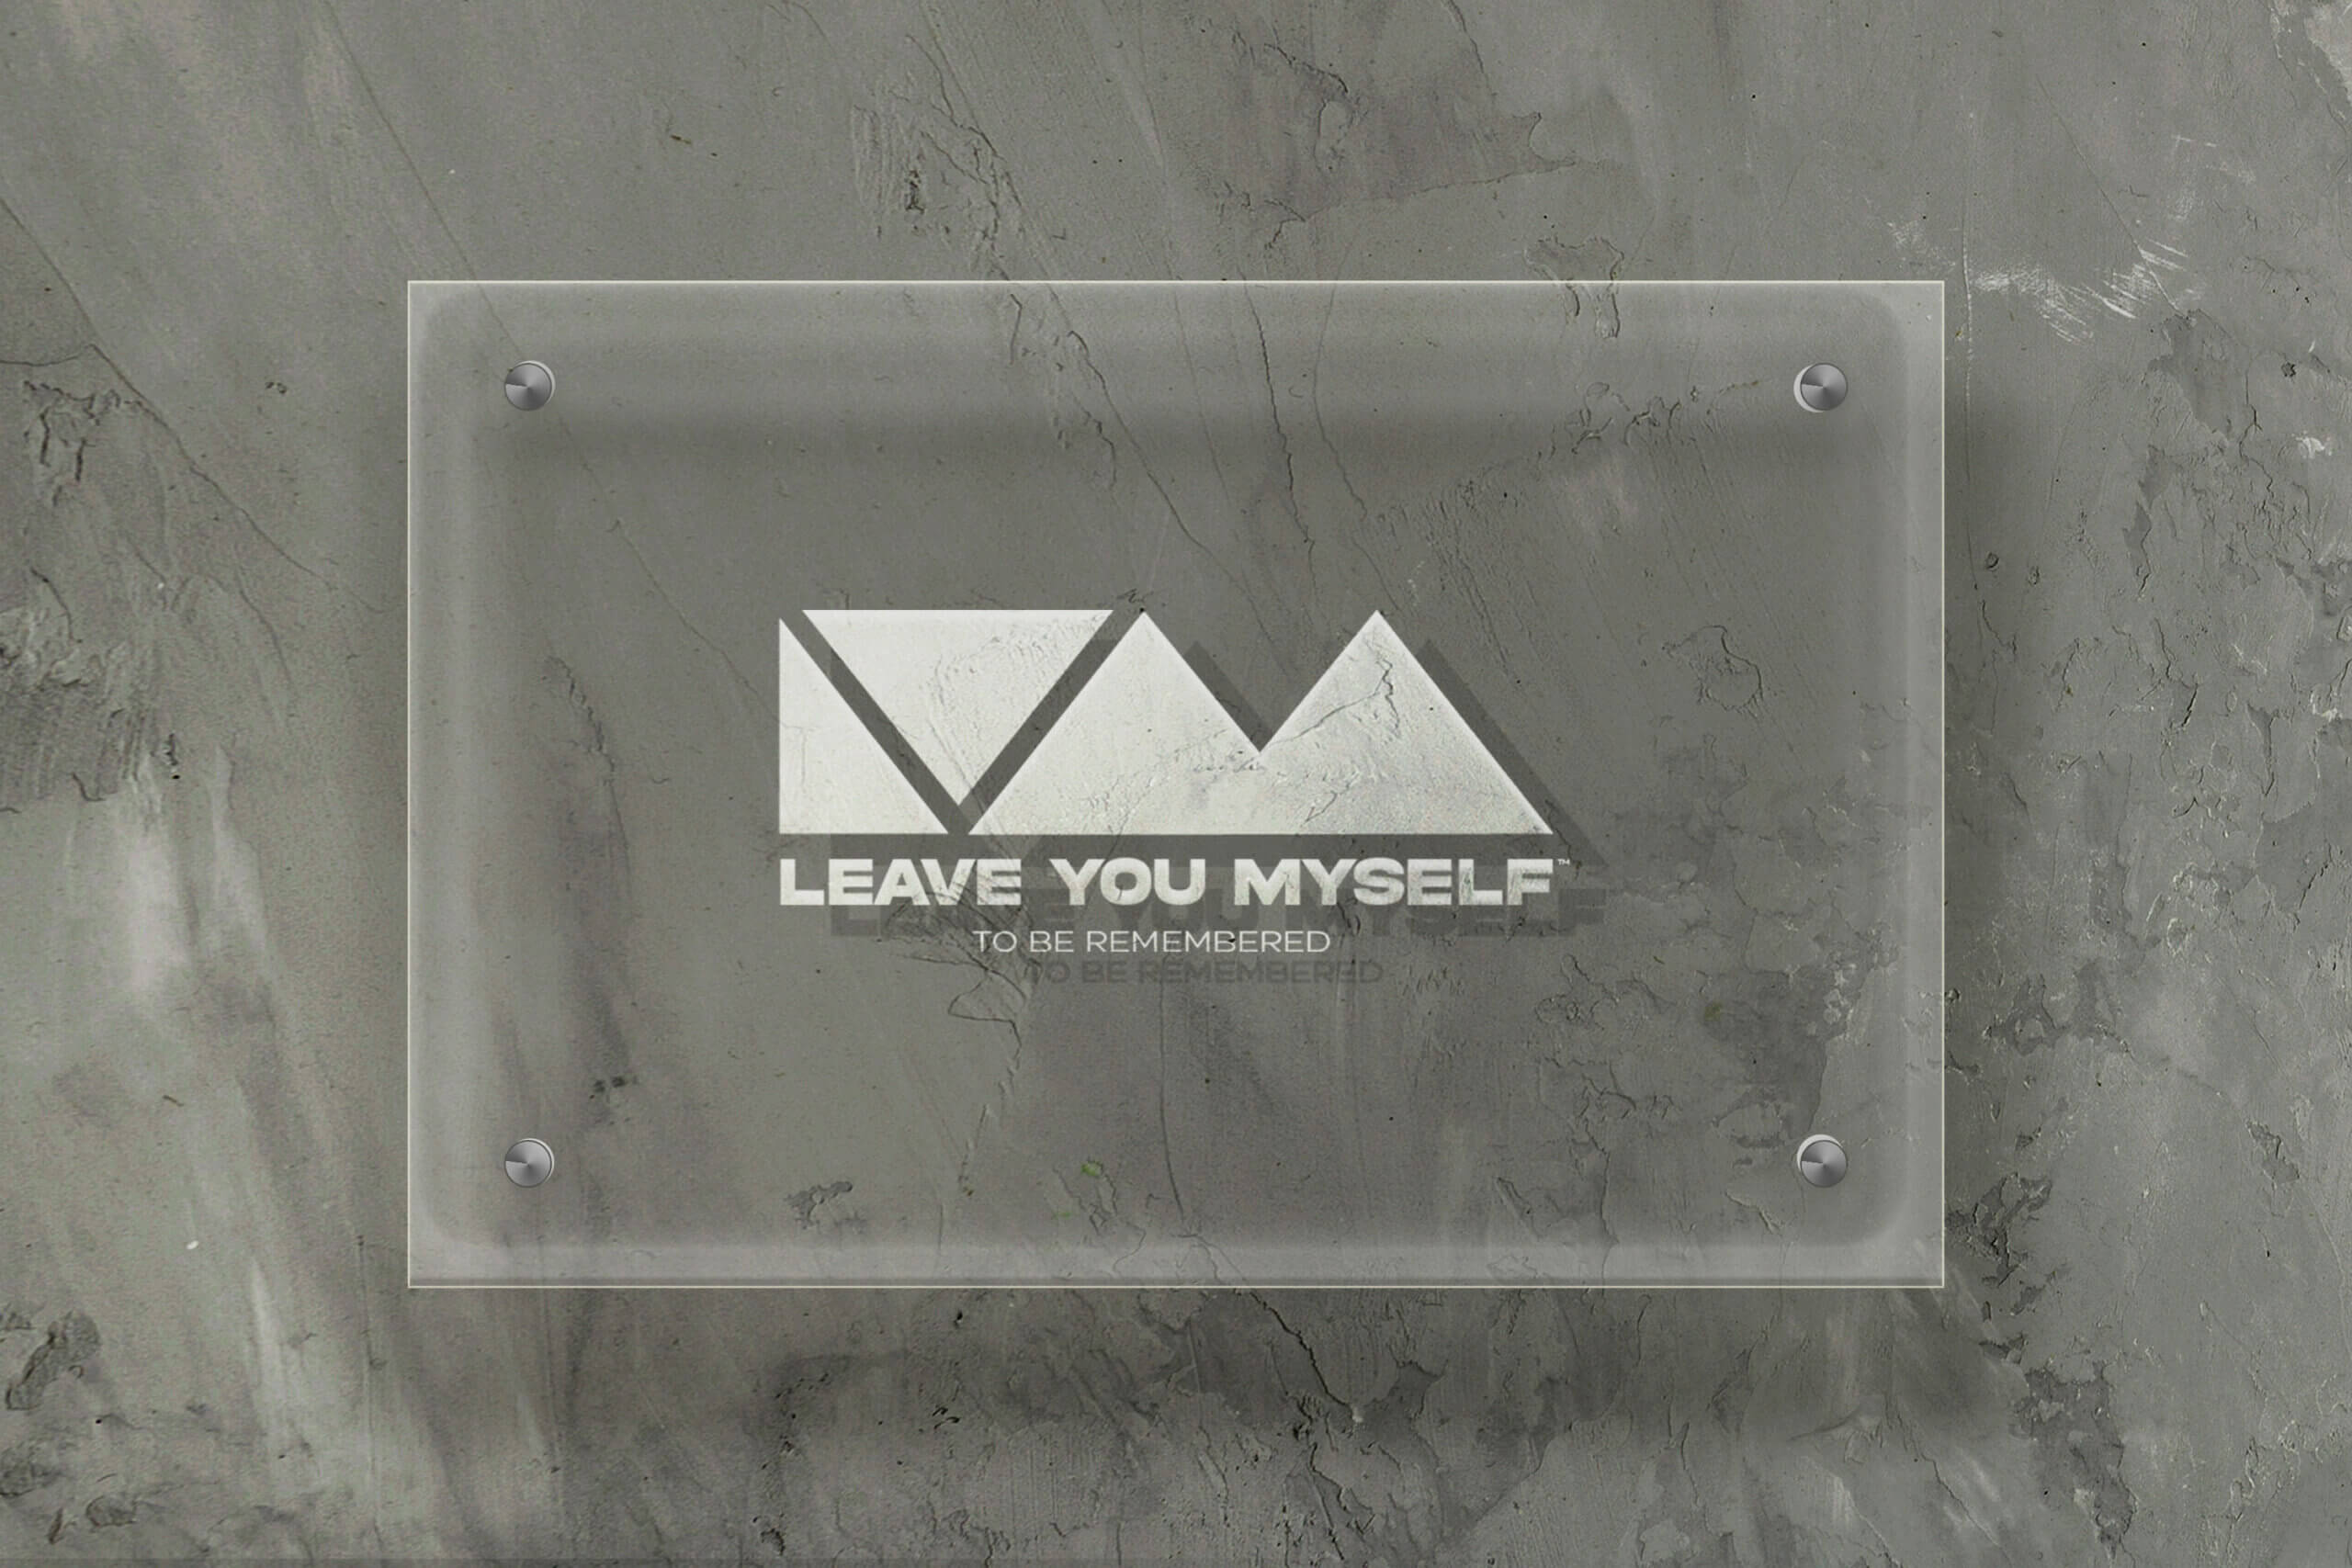 Transparent Glass Sign - Leave You Myself